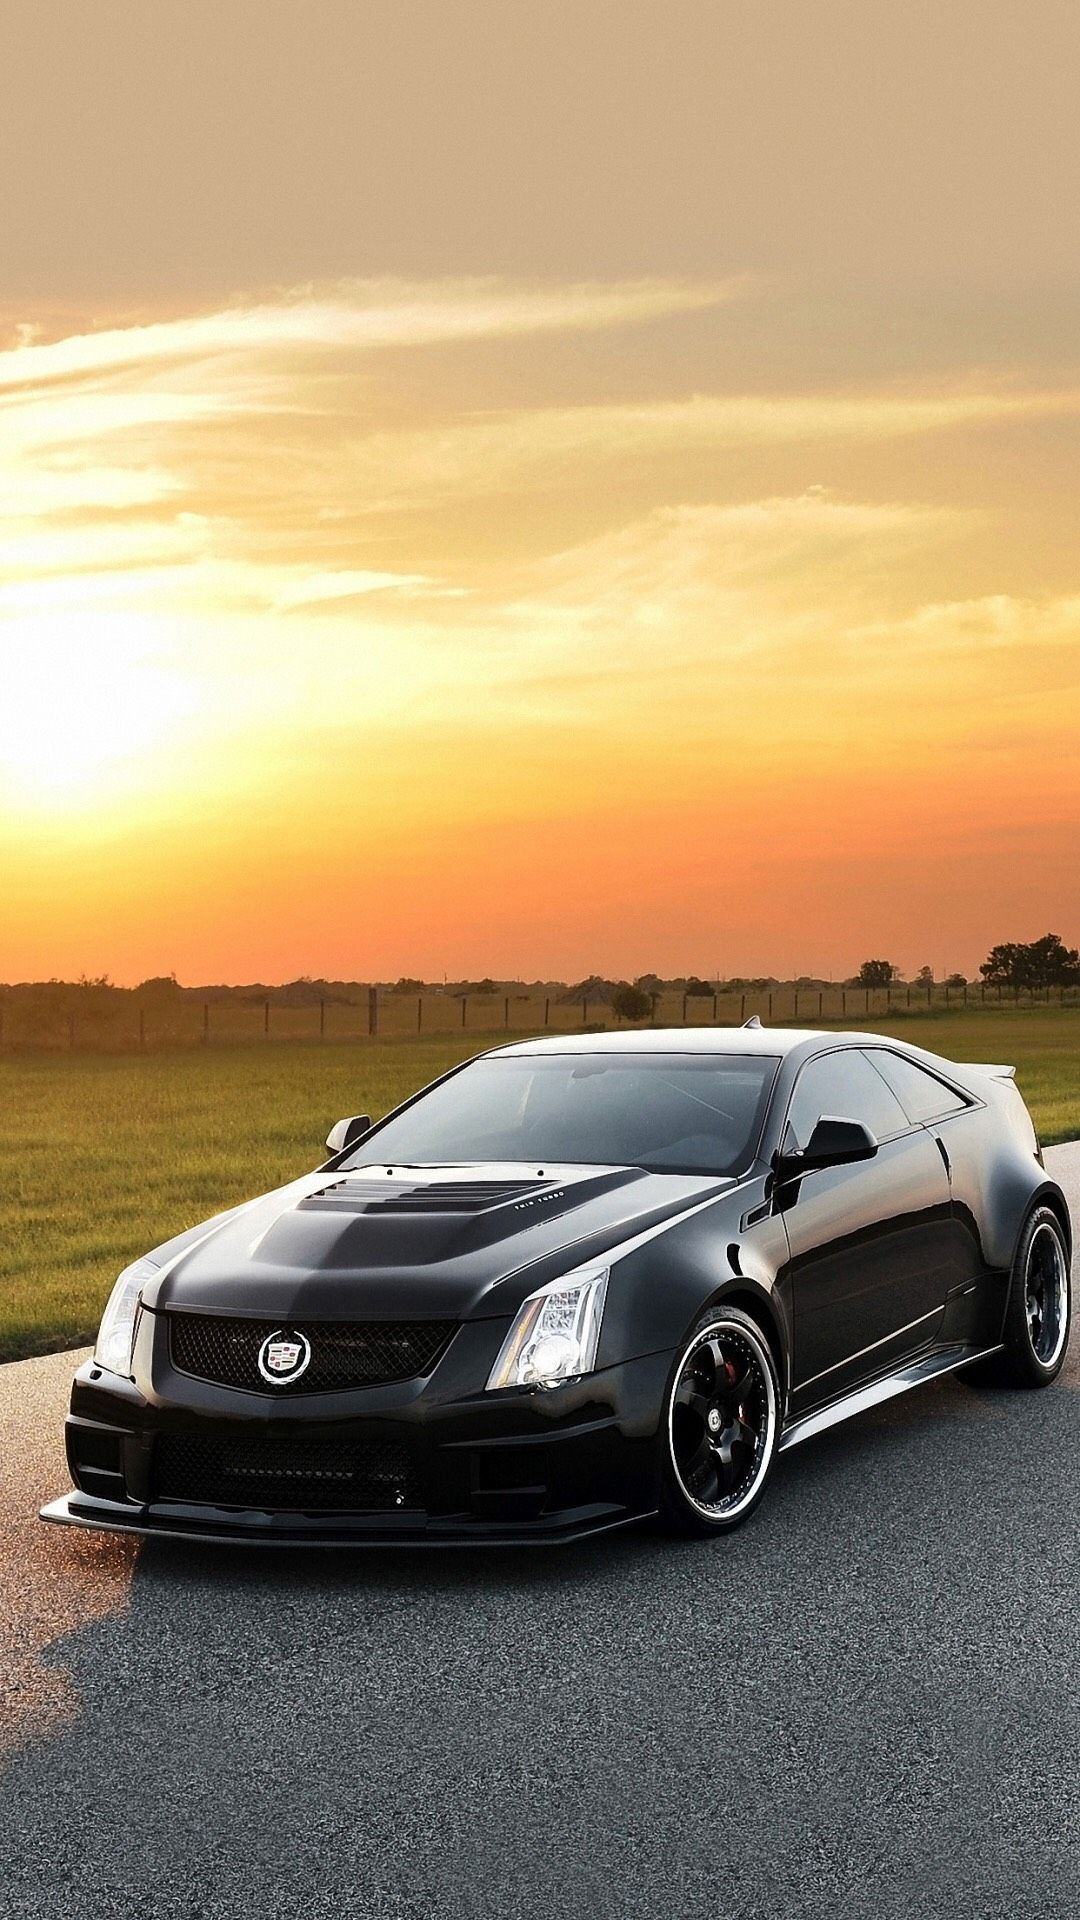 Cadillac iPhone Wallpapers   Top Free Cadillac iPhone Backgrounds ...